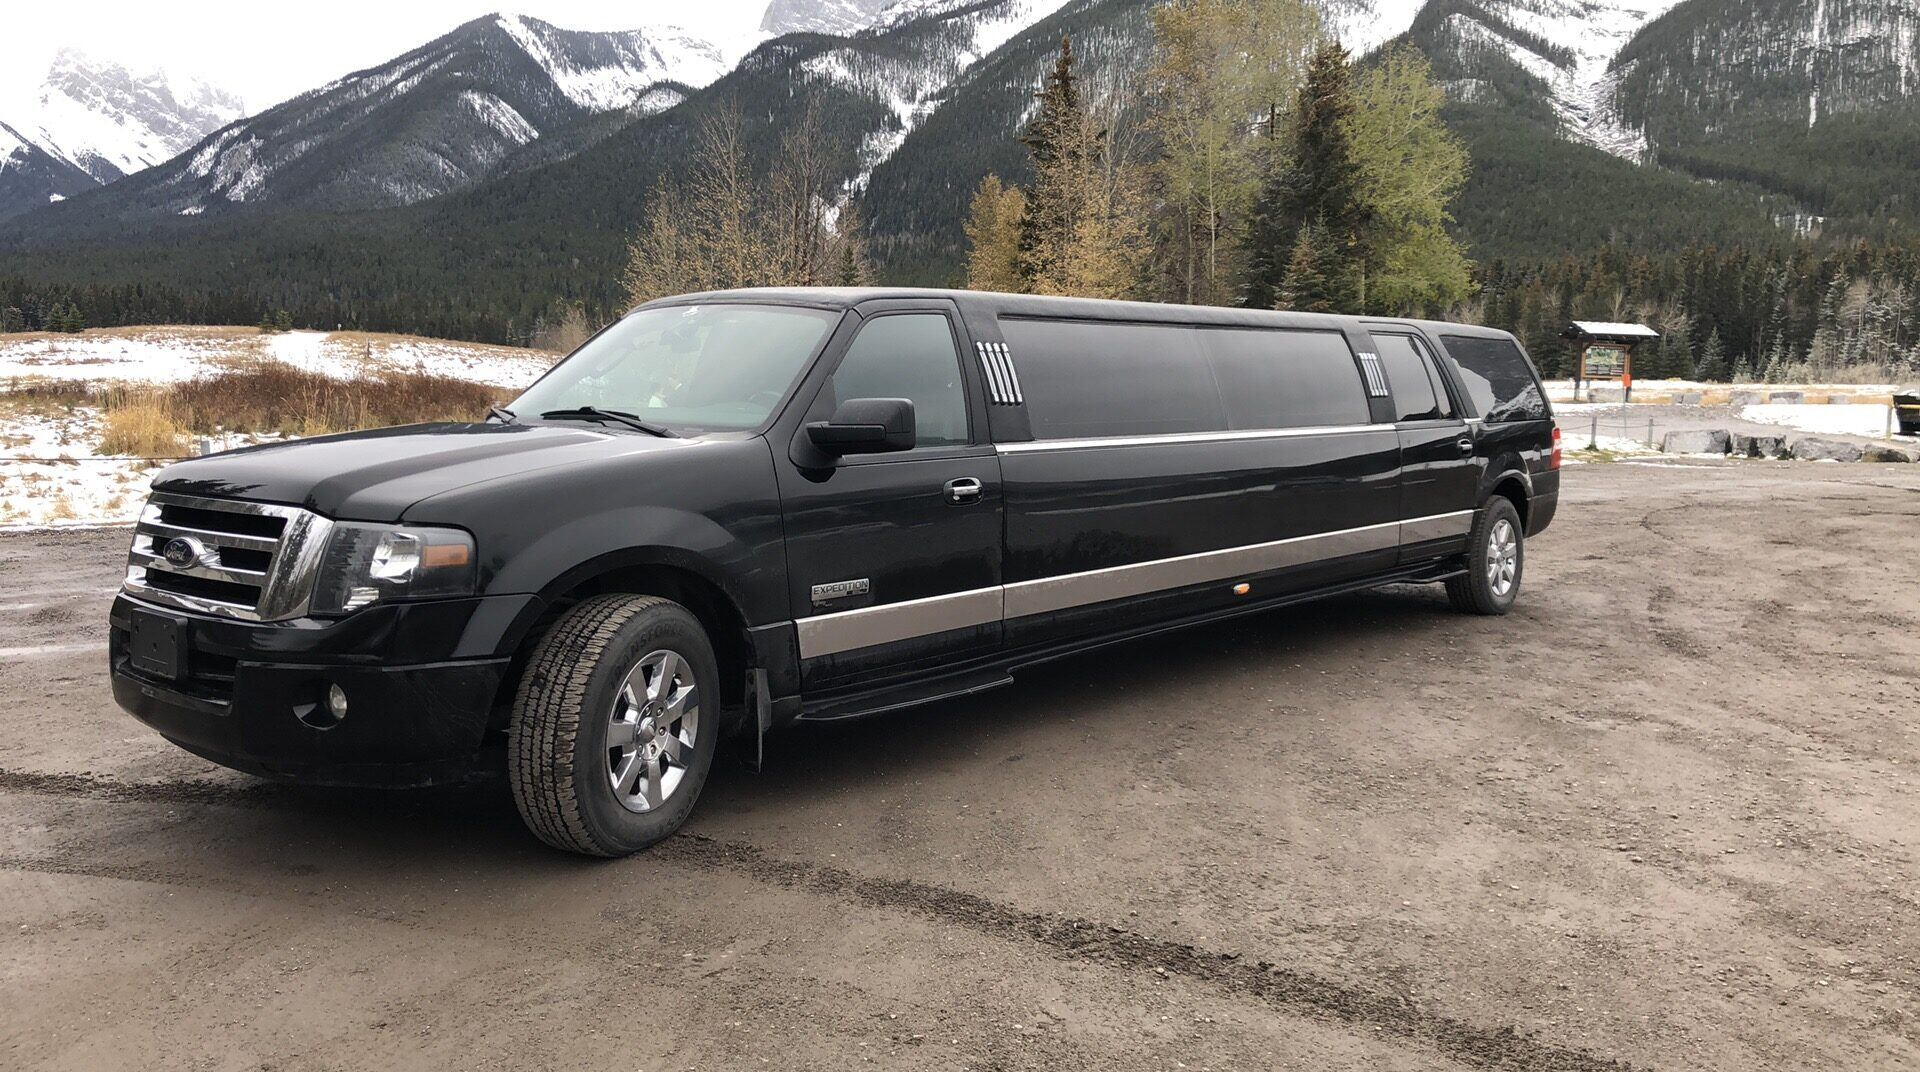 Ford Expedition SUV Stretch Limousine